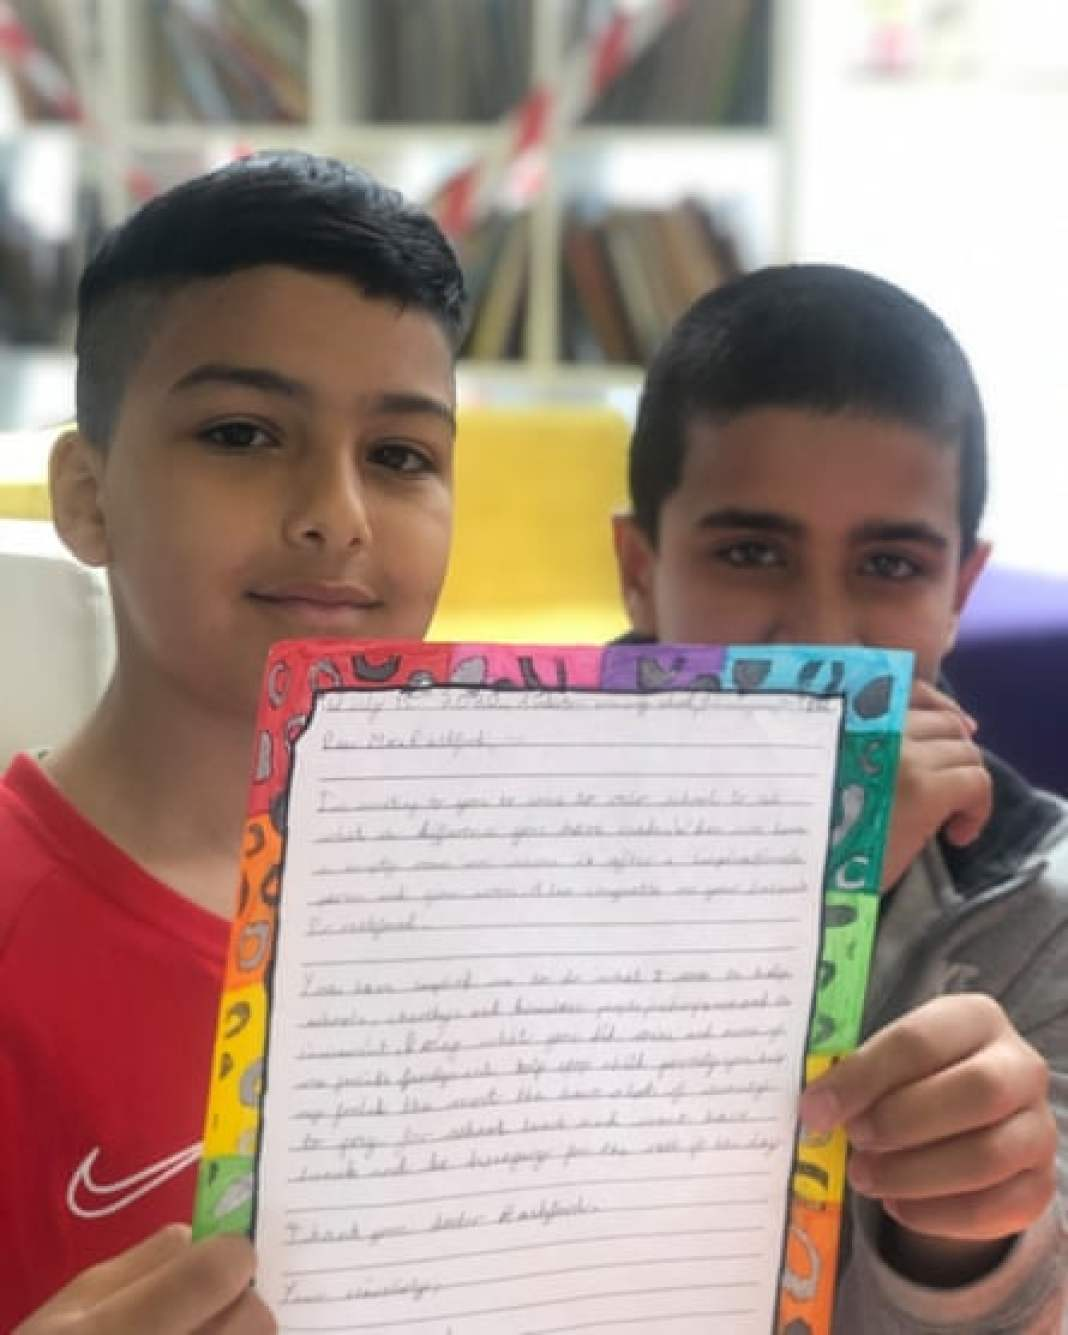 Two Anderton Park pupils with their letter for Marcus Rashford.